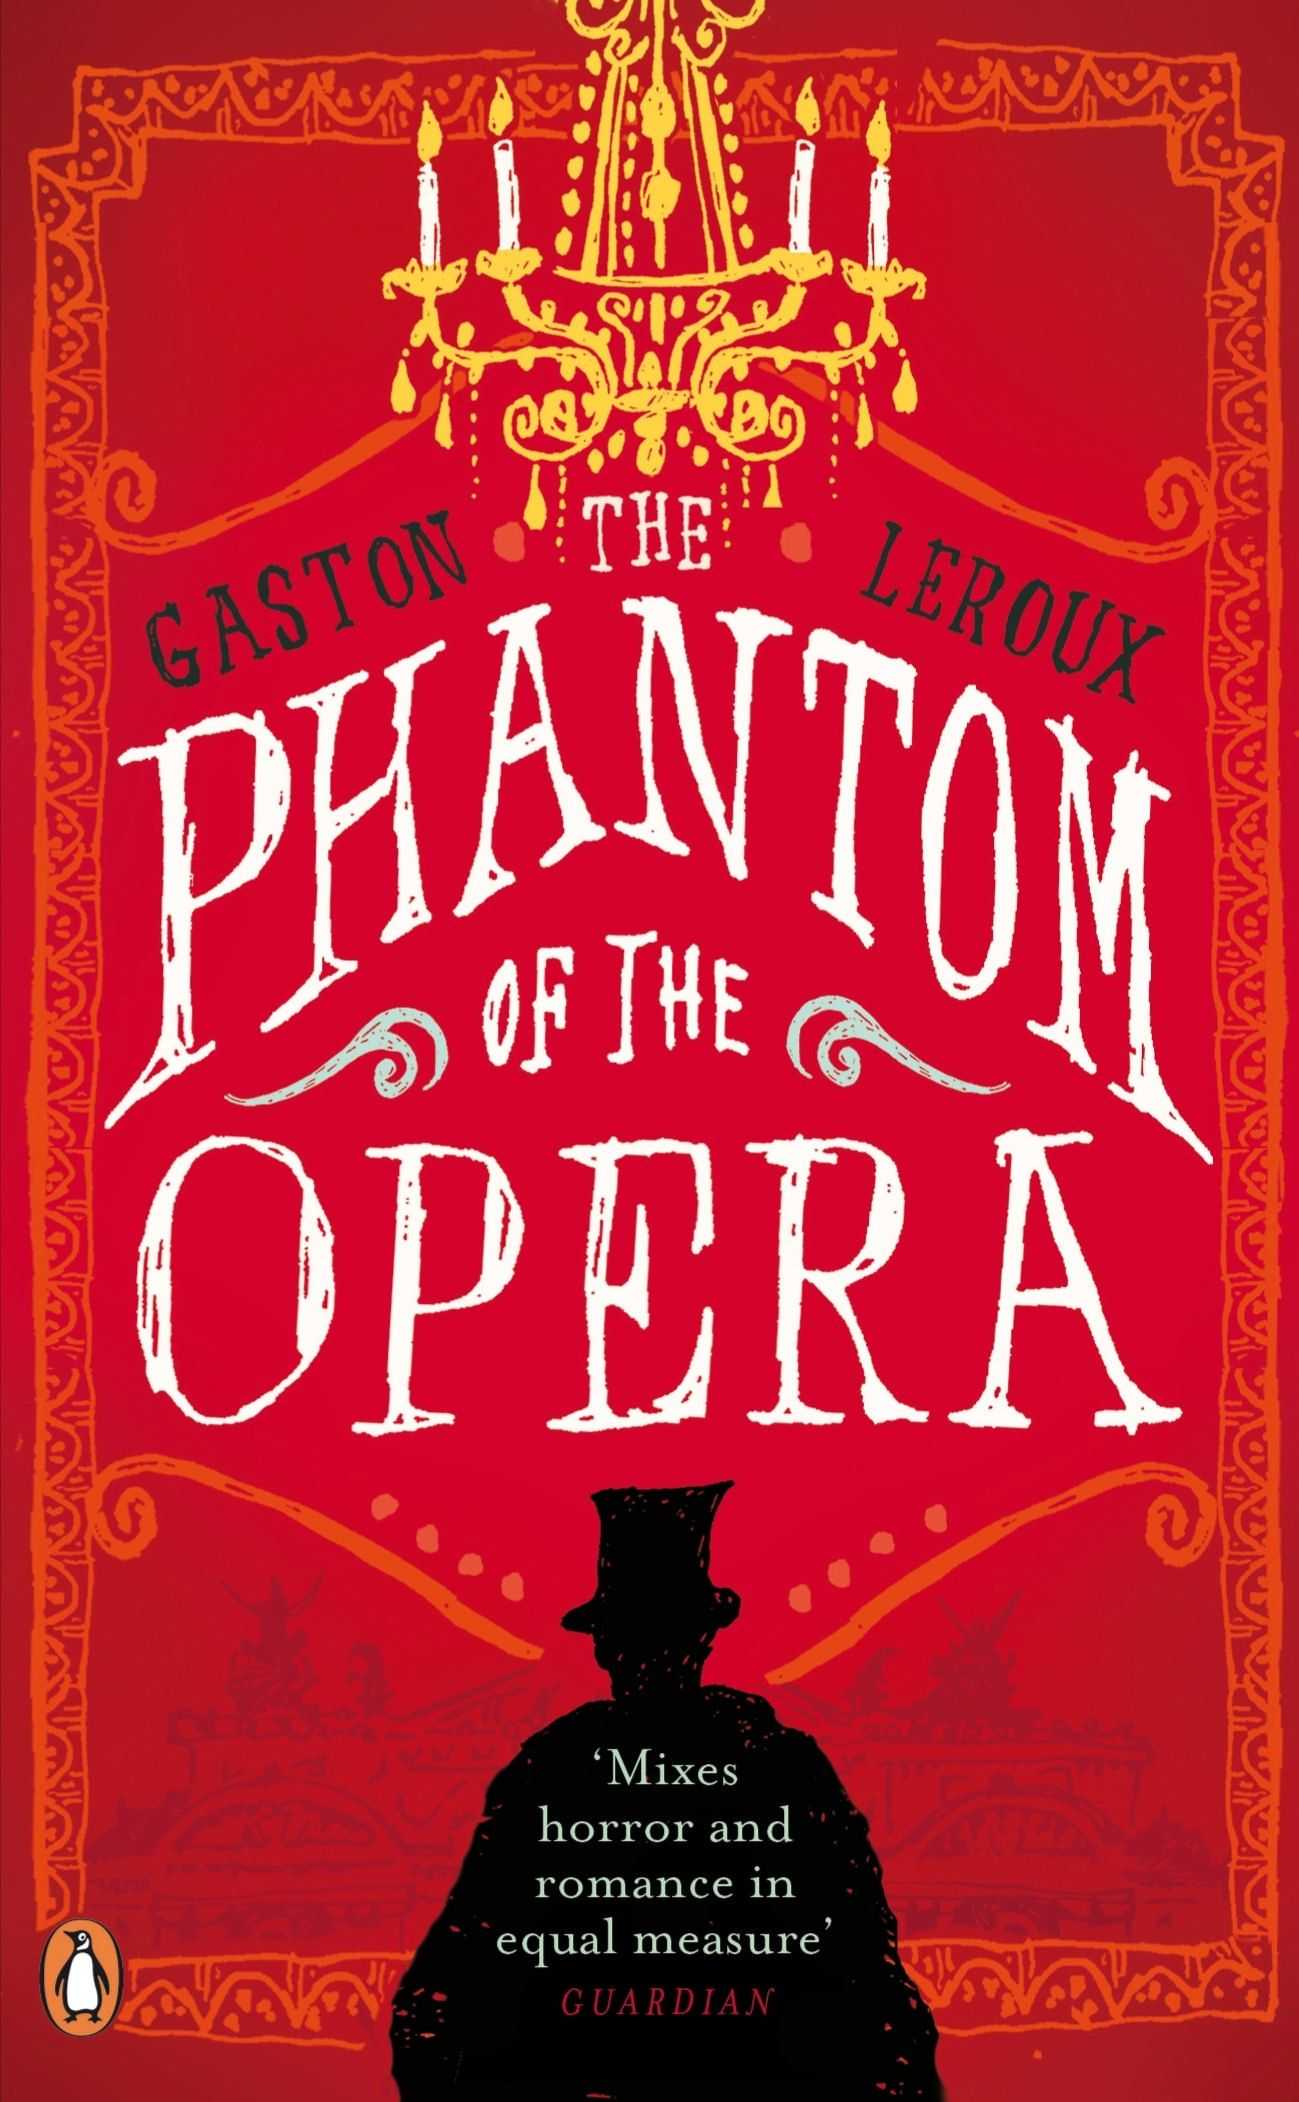 Image result for phantom of the opera book cover